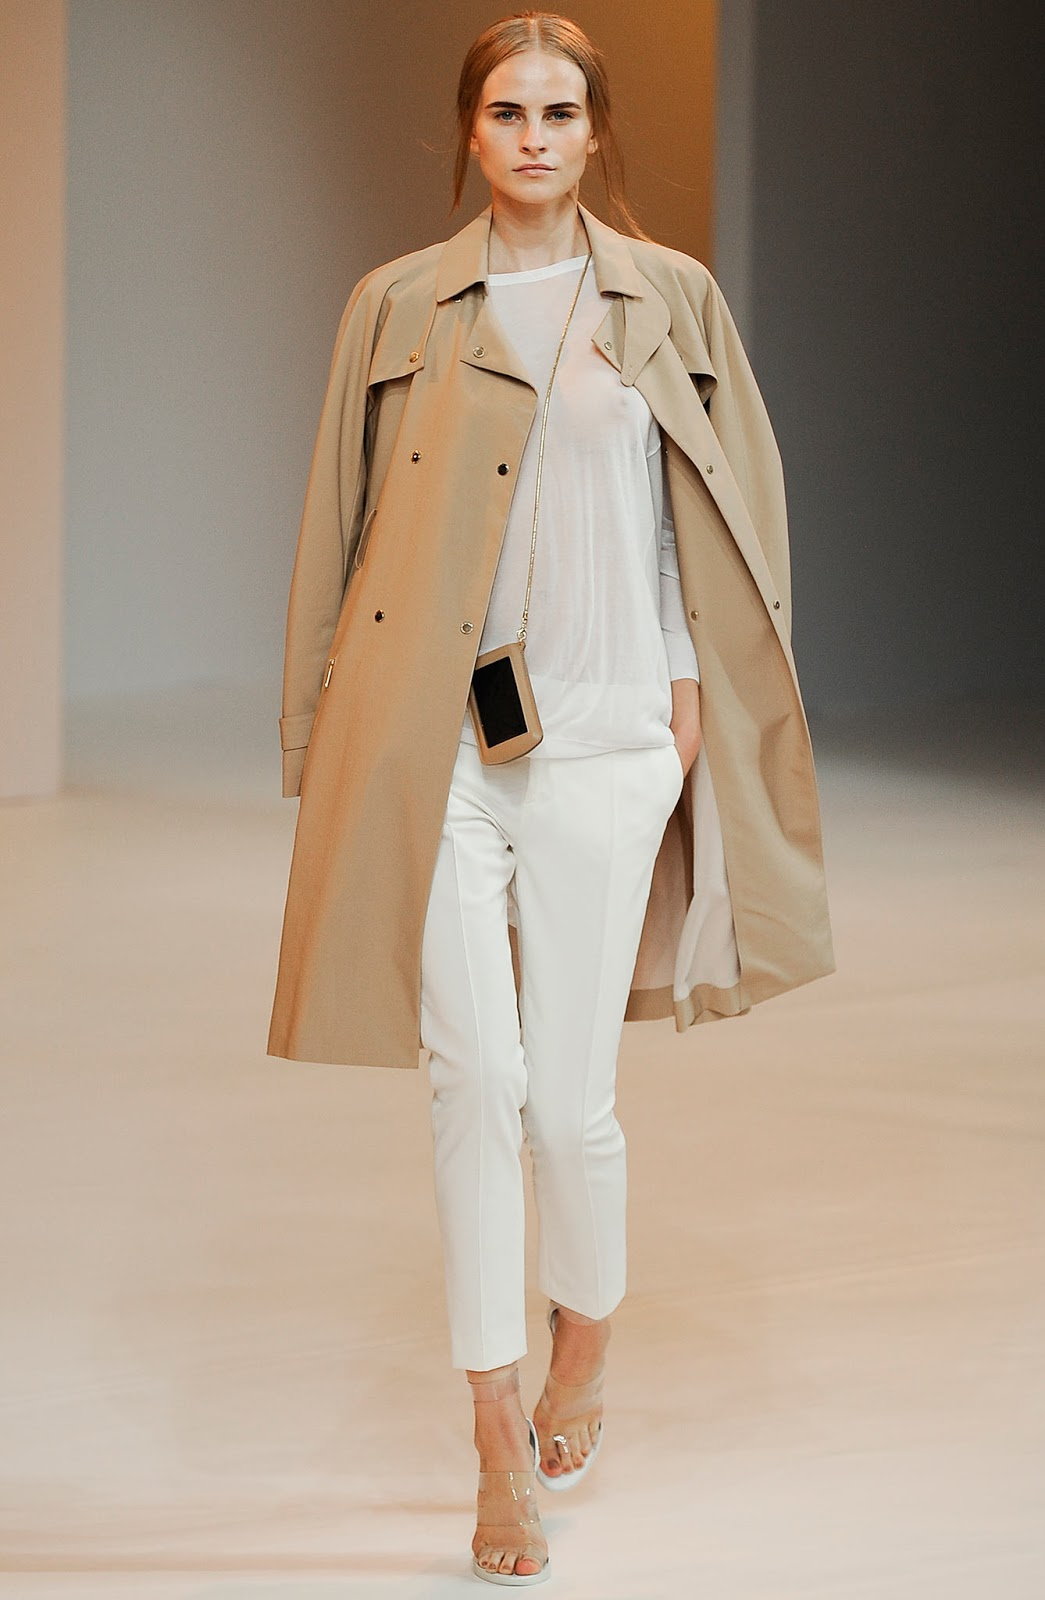 How to wear a trench coat? How to wear white trousers? Outfit idea and designer look for less inspired by Porsche Design Spring/Summer 2015 collection / via fashioned by love british fashion blog